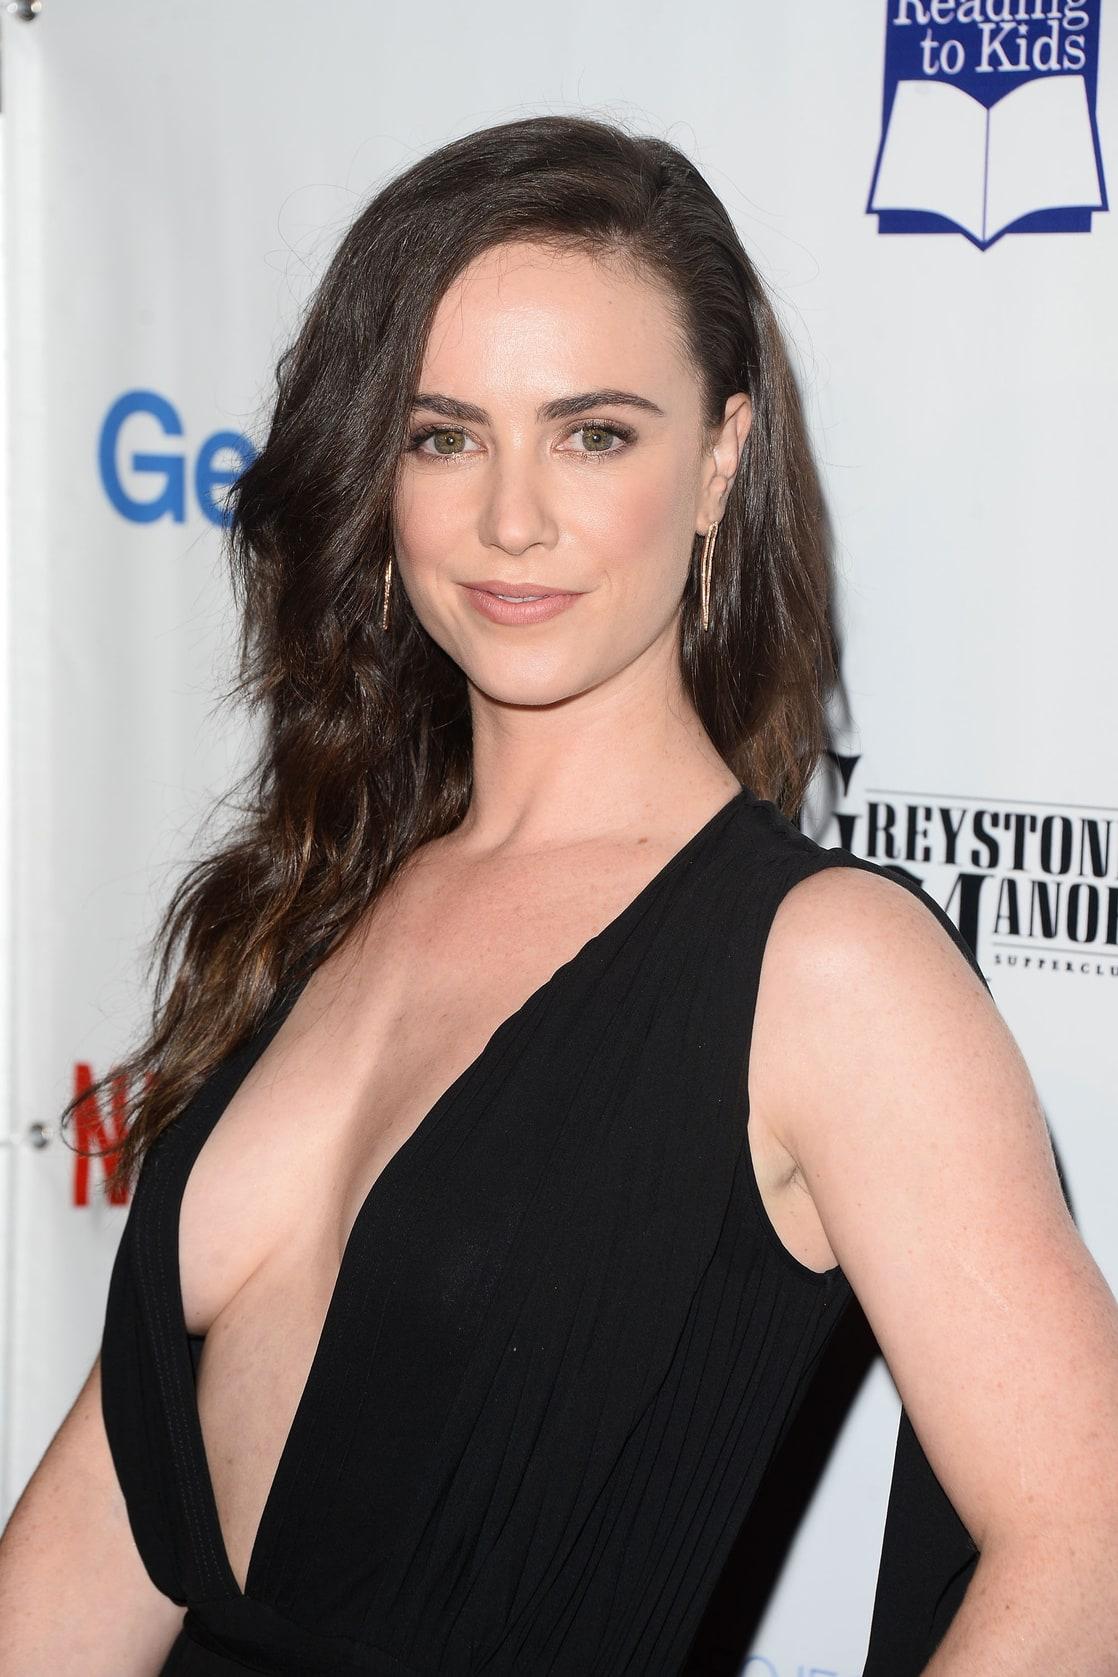 Cleavage Amy Manson naked photo 2017